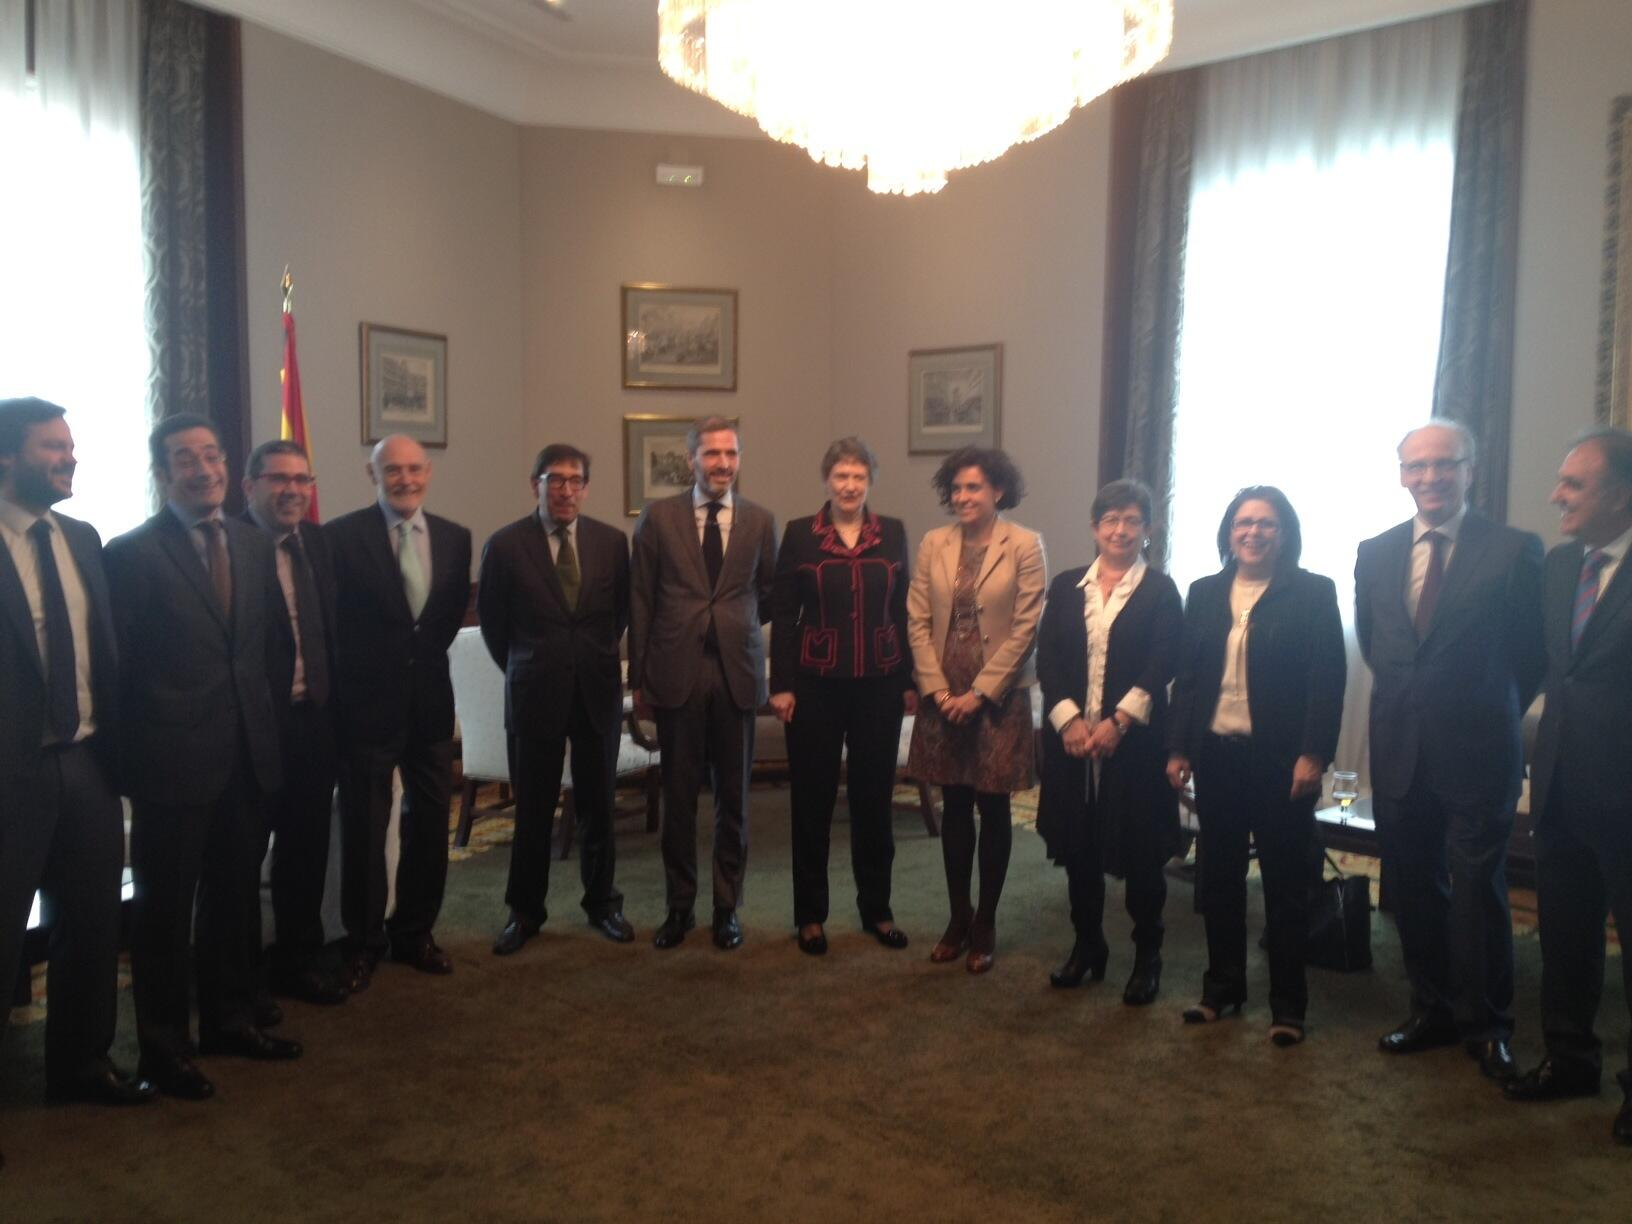 Twitter / HelenClarkUNDP: Met with Members of Parliament ...